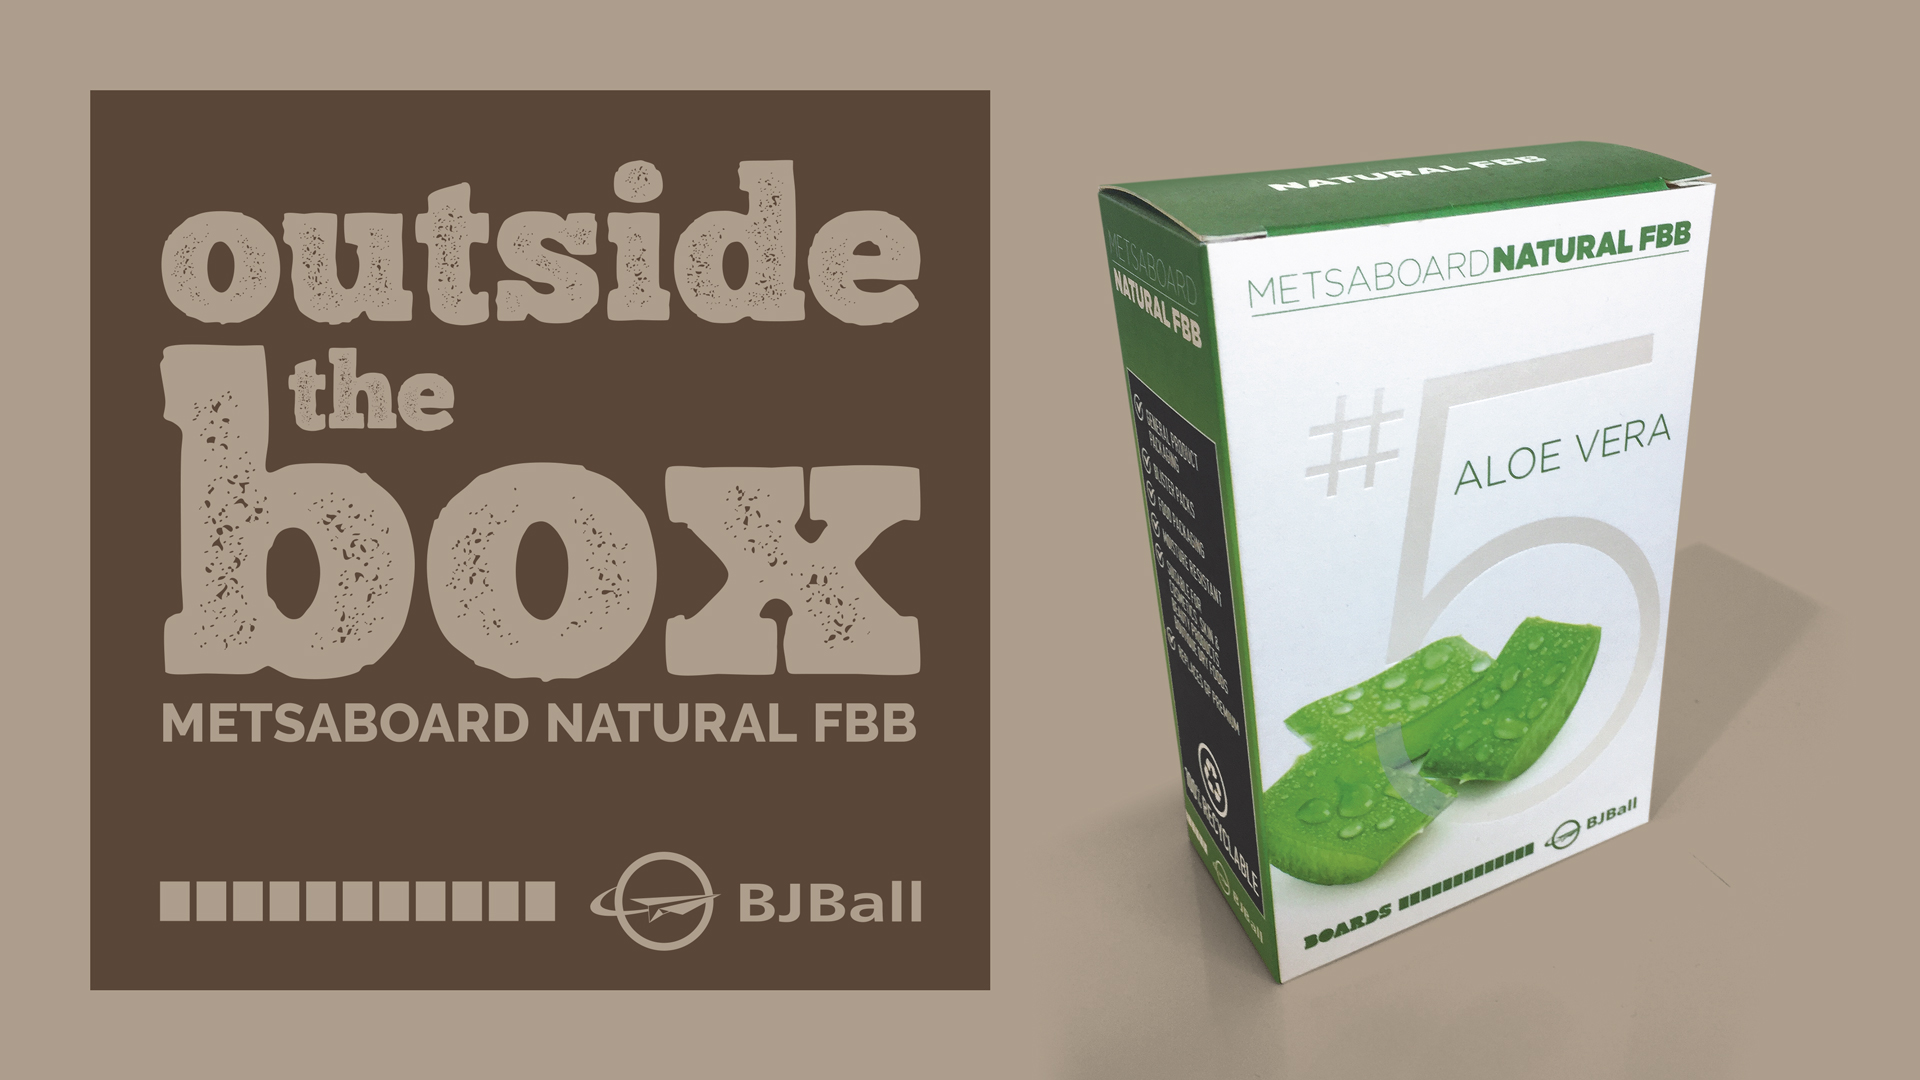 Green & White Metsaboard Natural FBB Carton Example - High End Cosmetic Natural Look